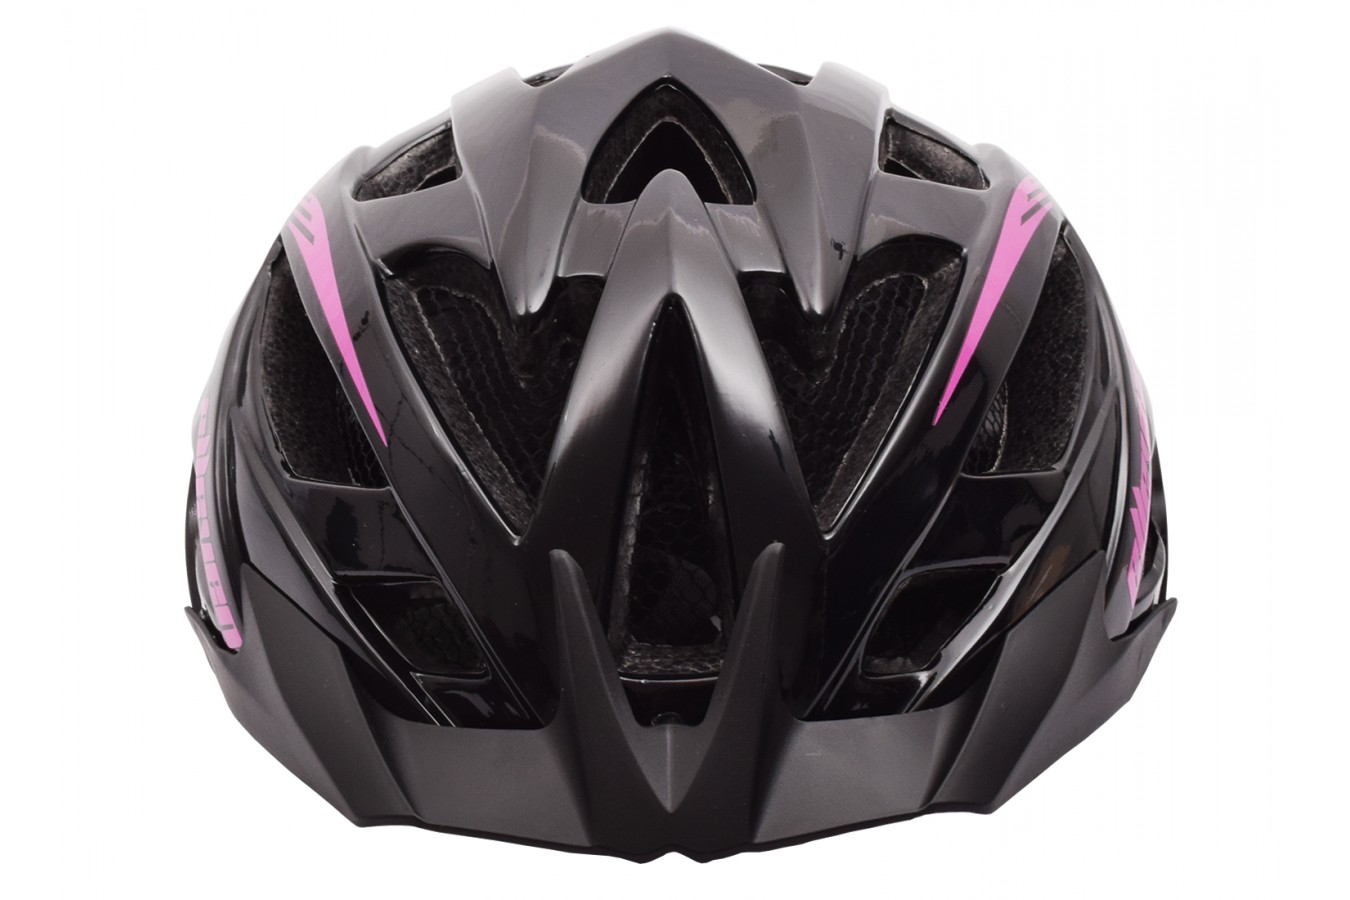 Capacete Adulto Feminino Out-Mould